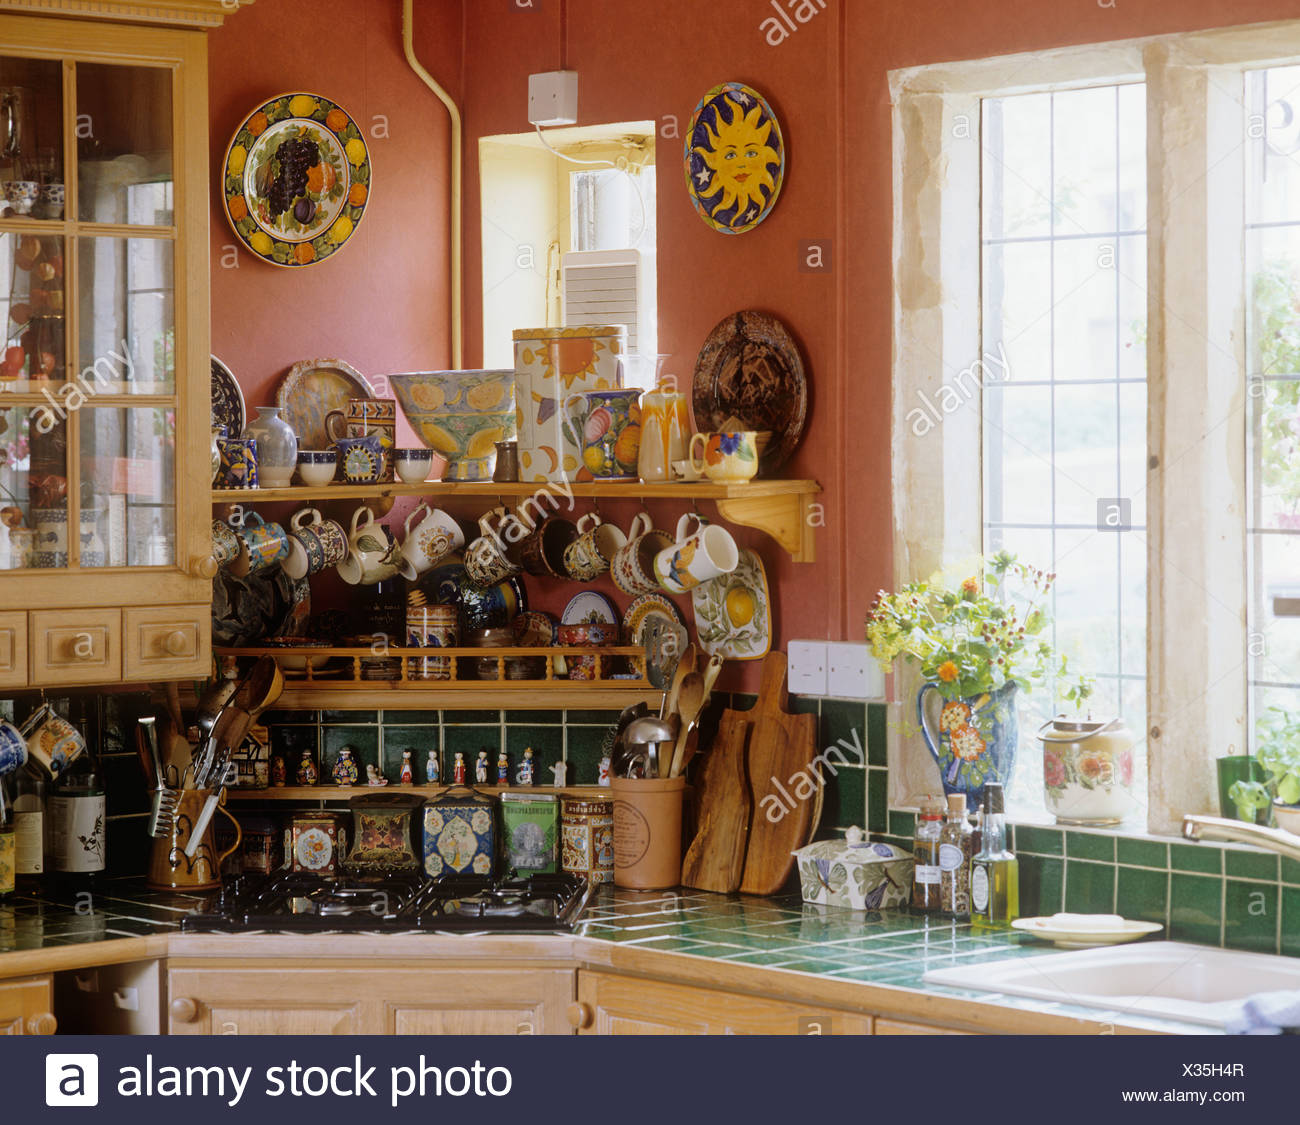 Colorful Pottery Plates On Wall Above Bowls And Cups On Pine Shelves